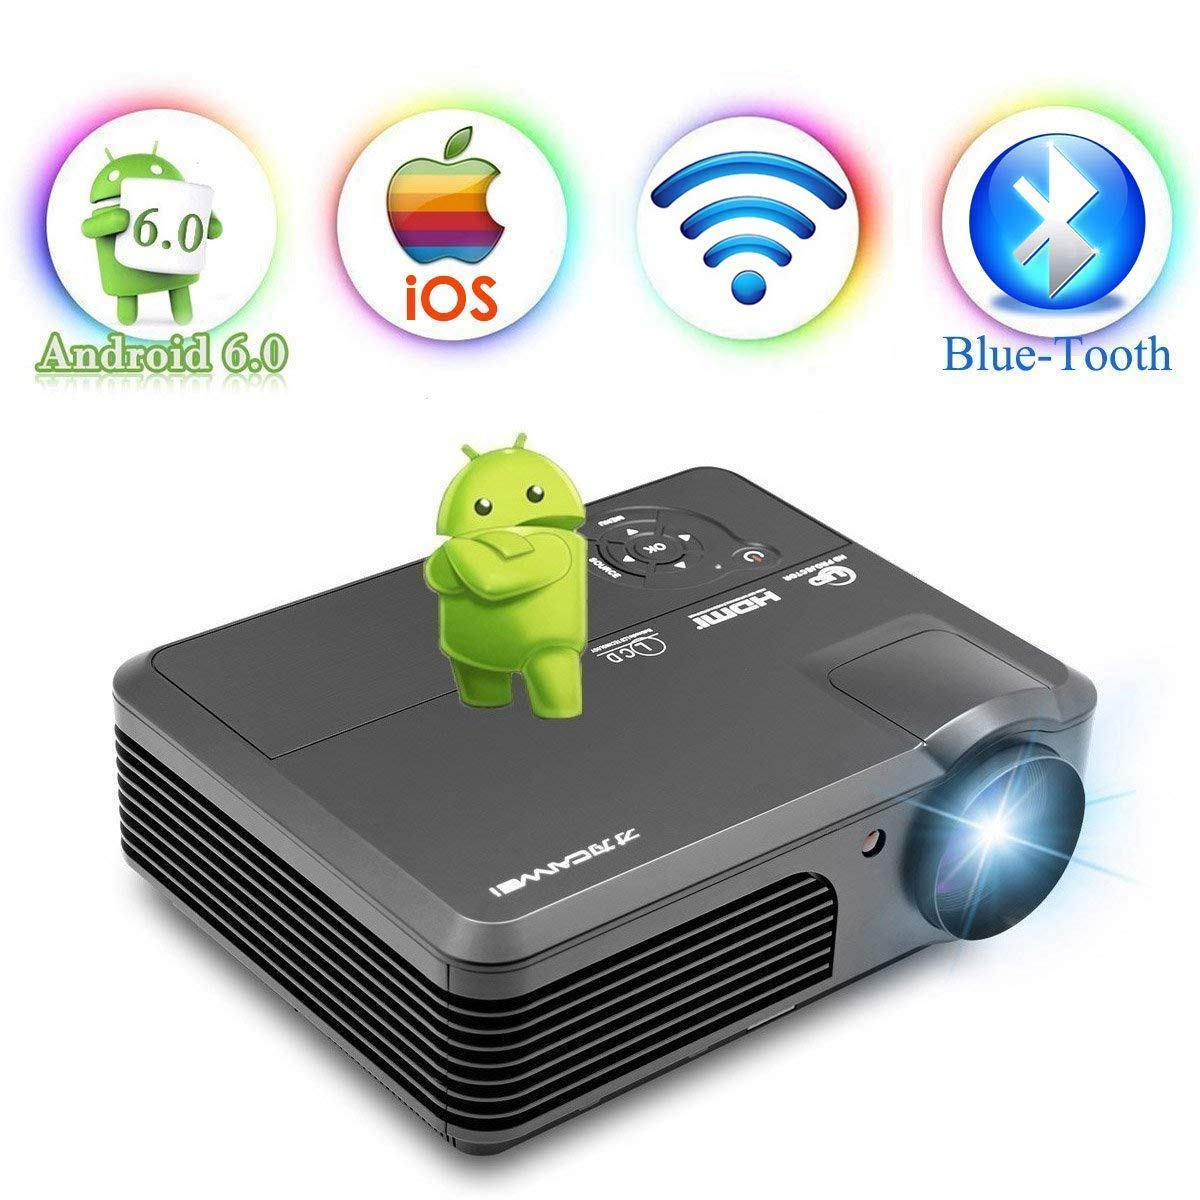 Android 6.0 WiFi Bluetooth Projector 3600 Lumens LCD LED Projector 1080p Full HD, Multimedia Home Theater Video Projector Speakers HDMI Cable Remote ...